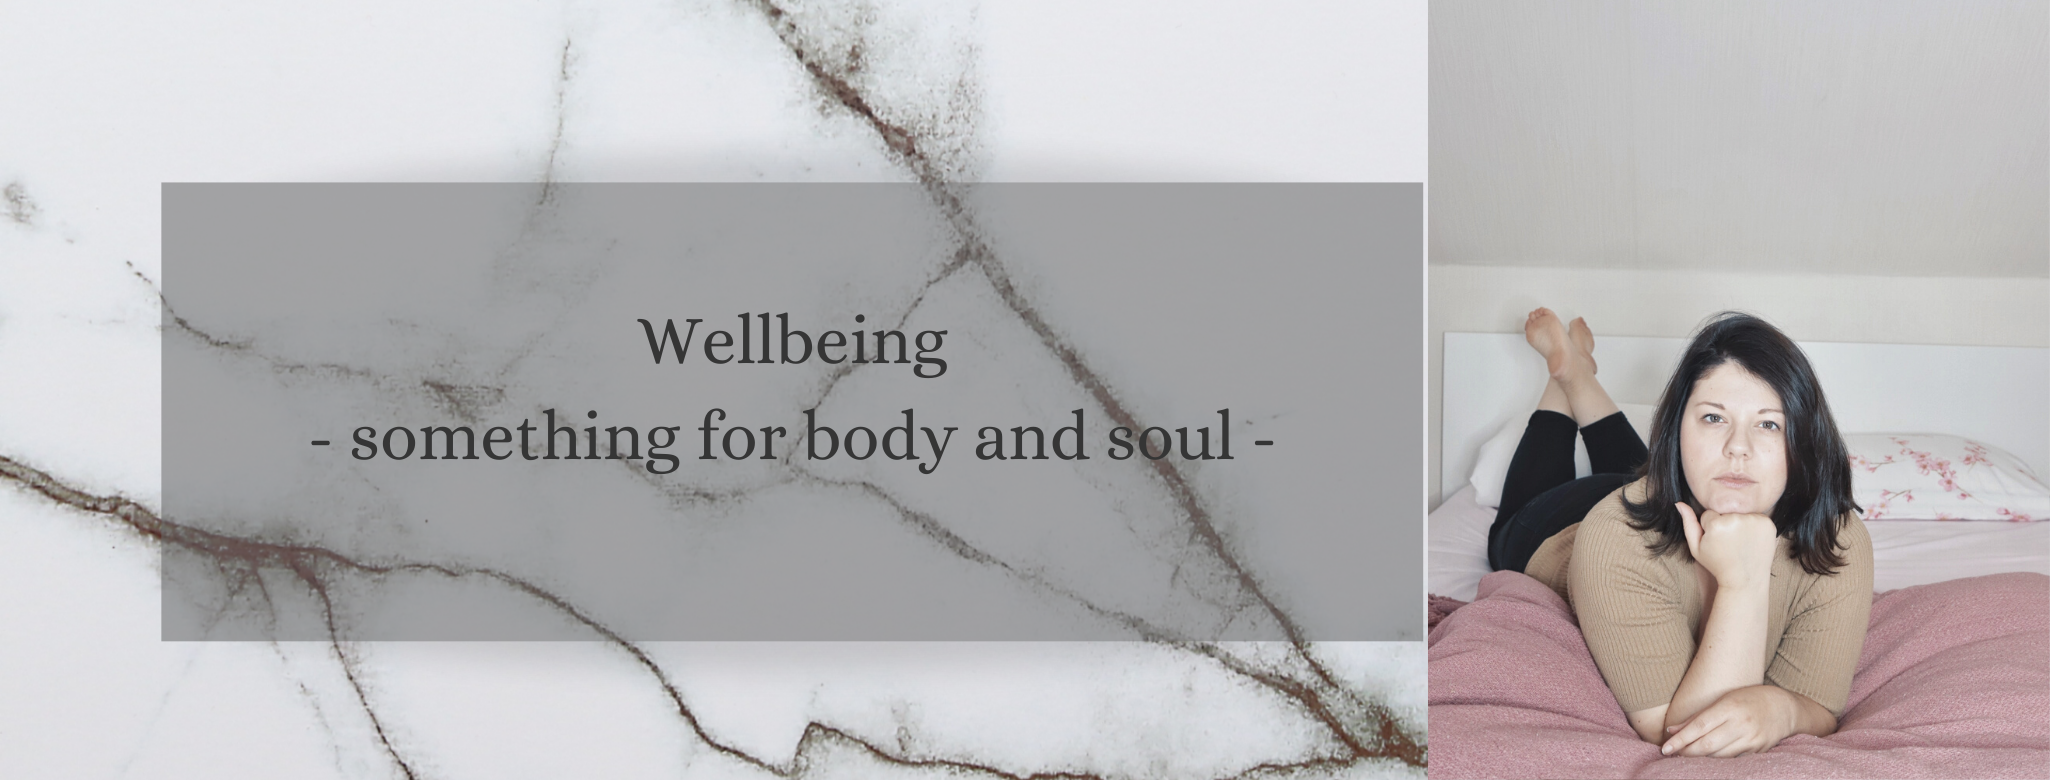 Wellbeing: Something for my soul and body